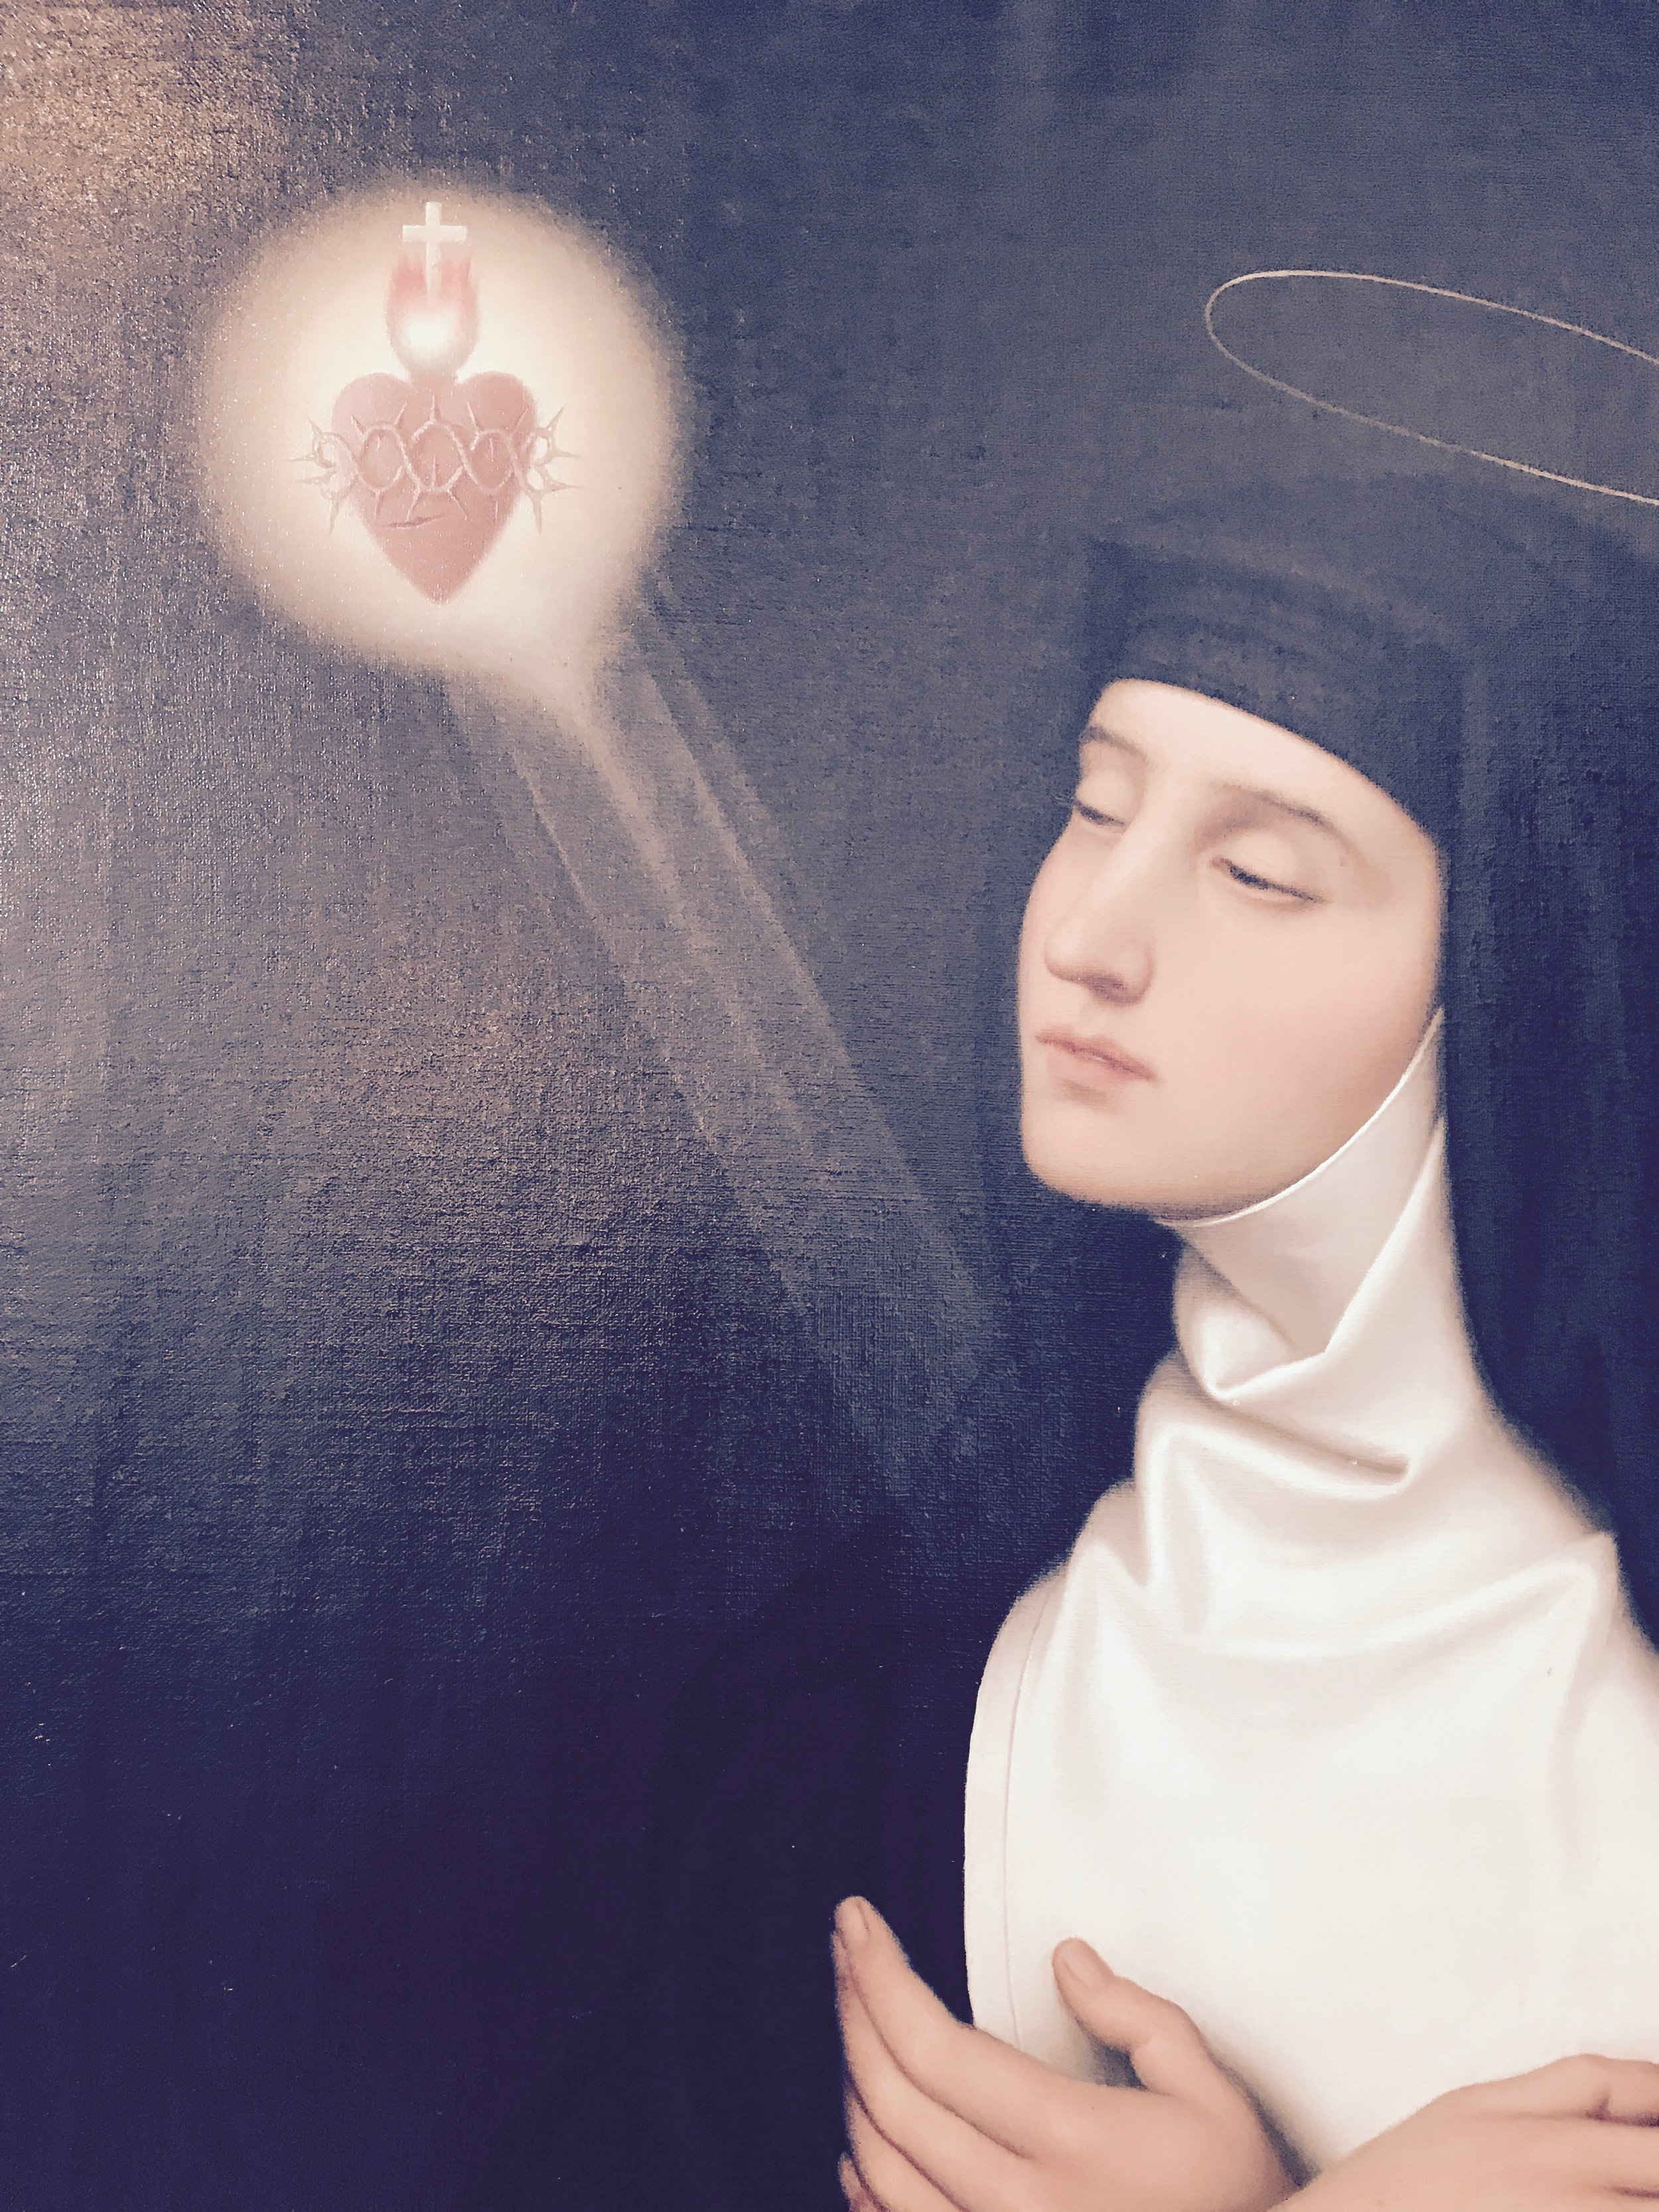 the heart of Christ revealing itself to a female mystic